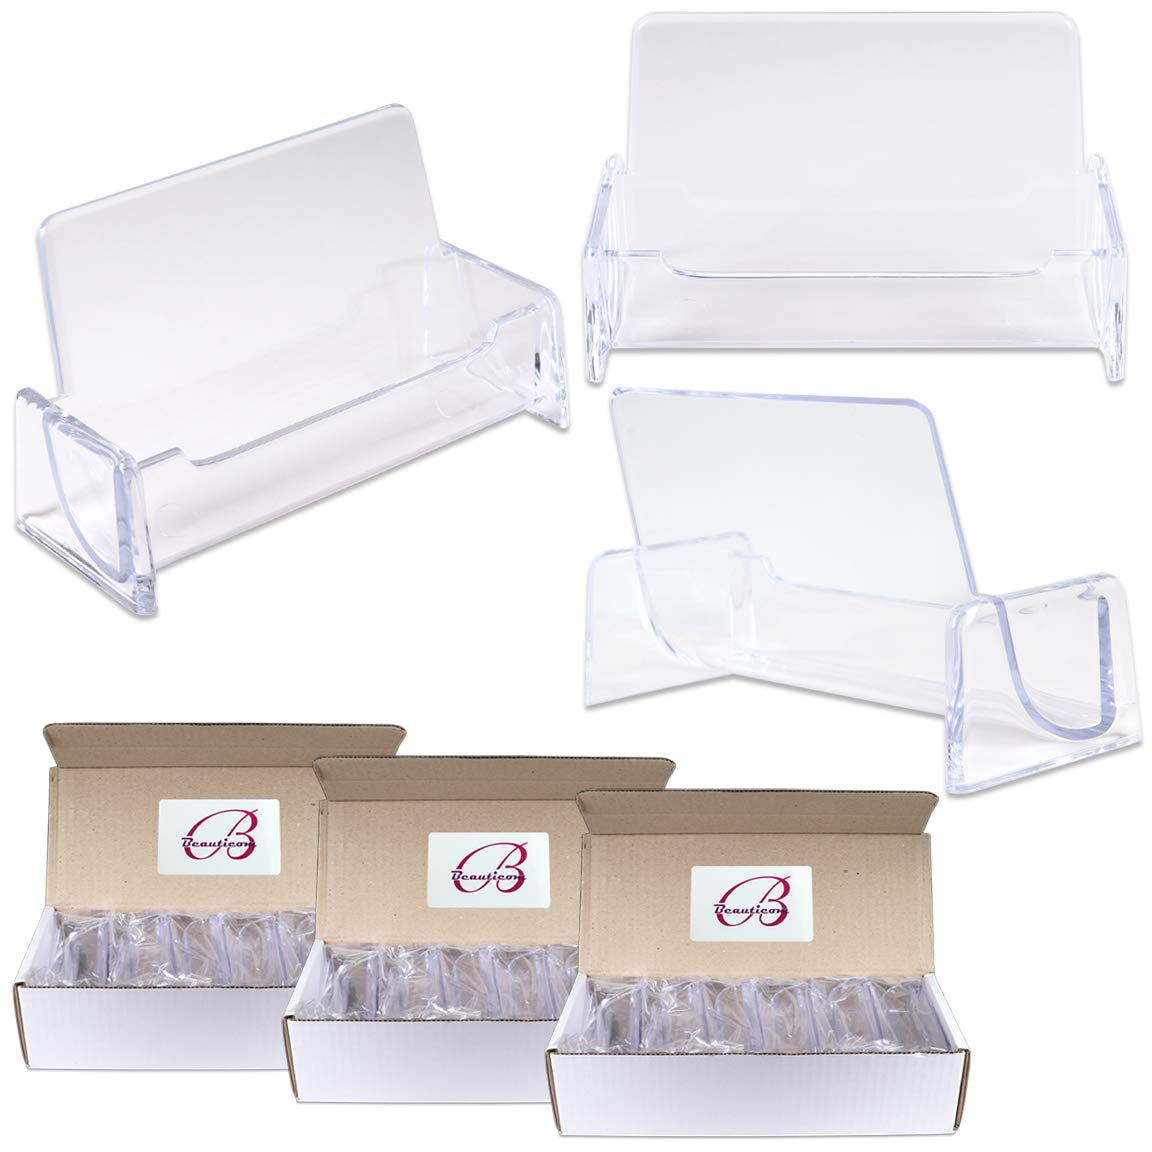 Beauticom Clear Plastic Business Card Holder Display Desktop Countertop (Style # 3) (36 Pieces)